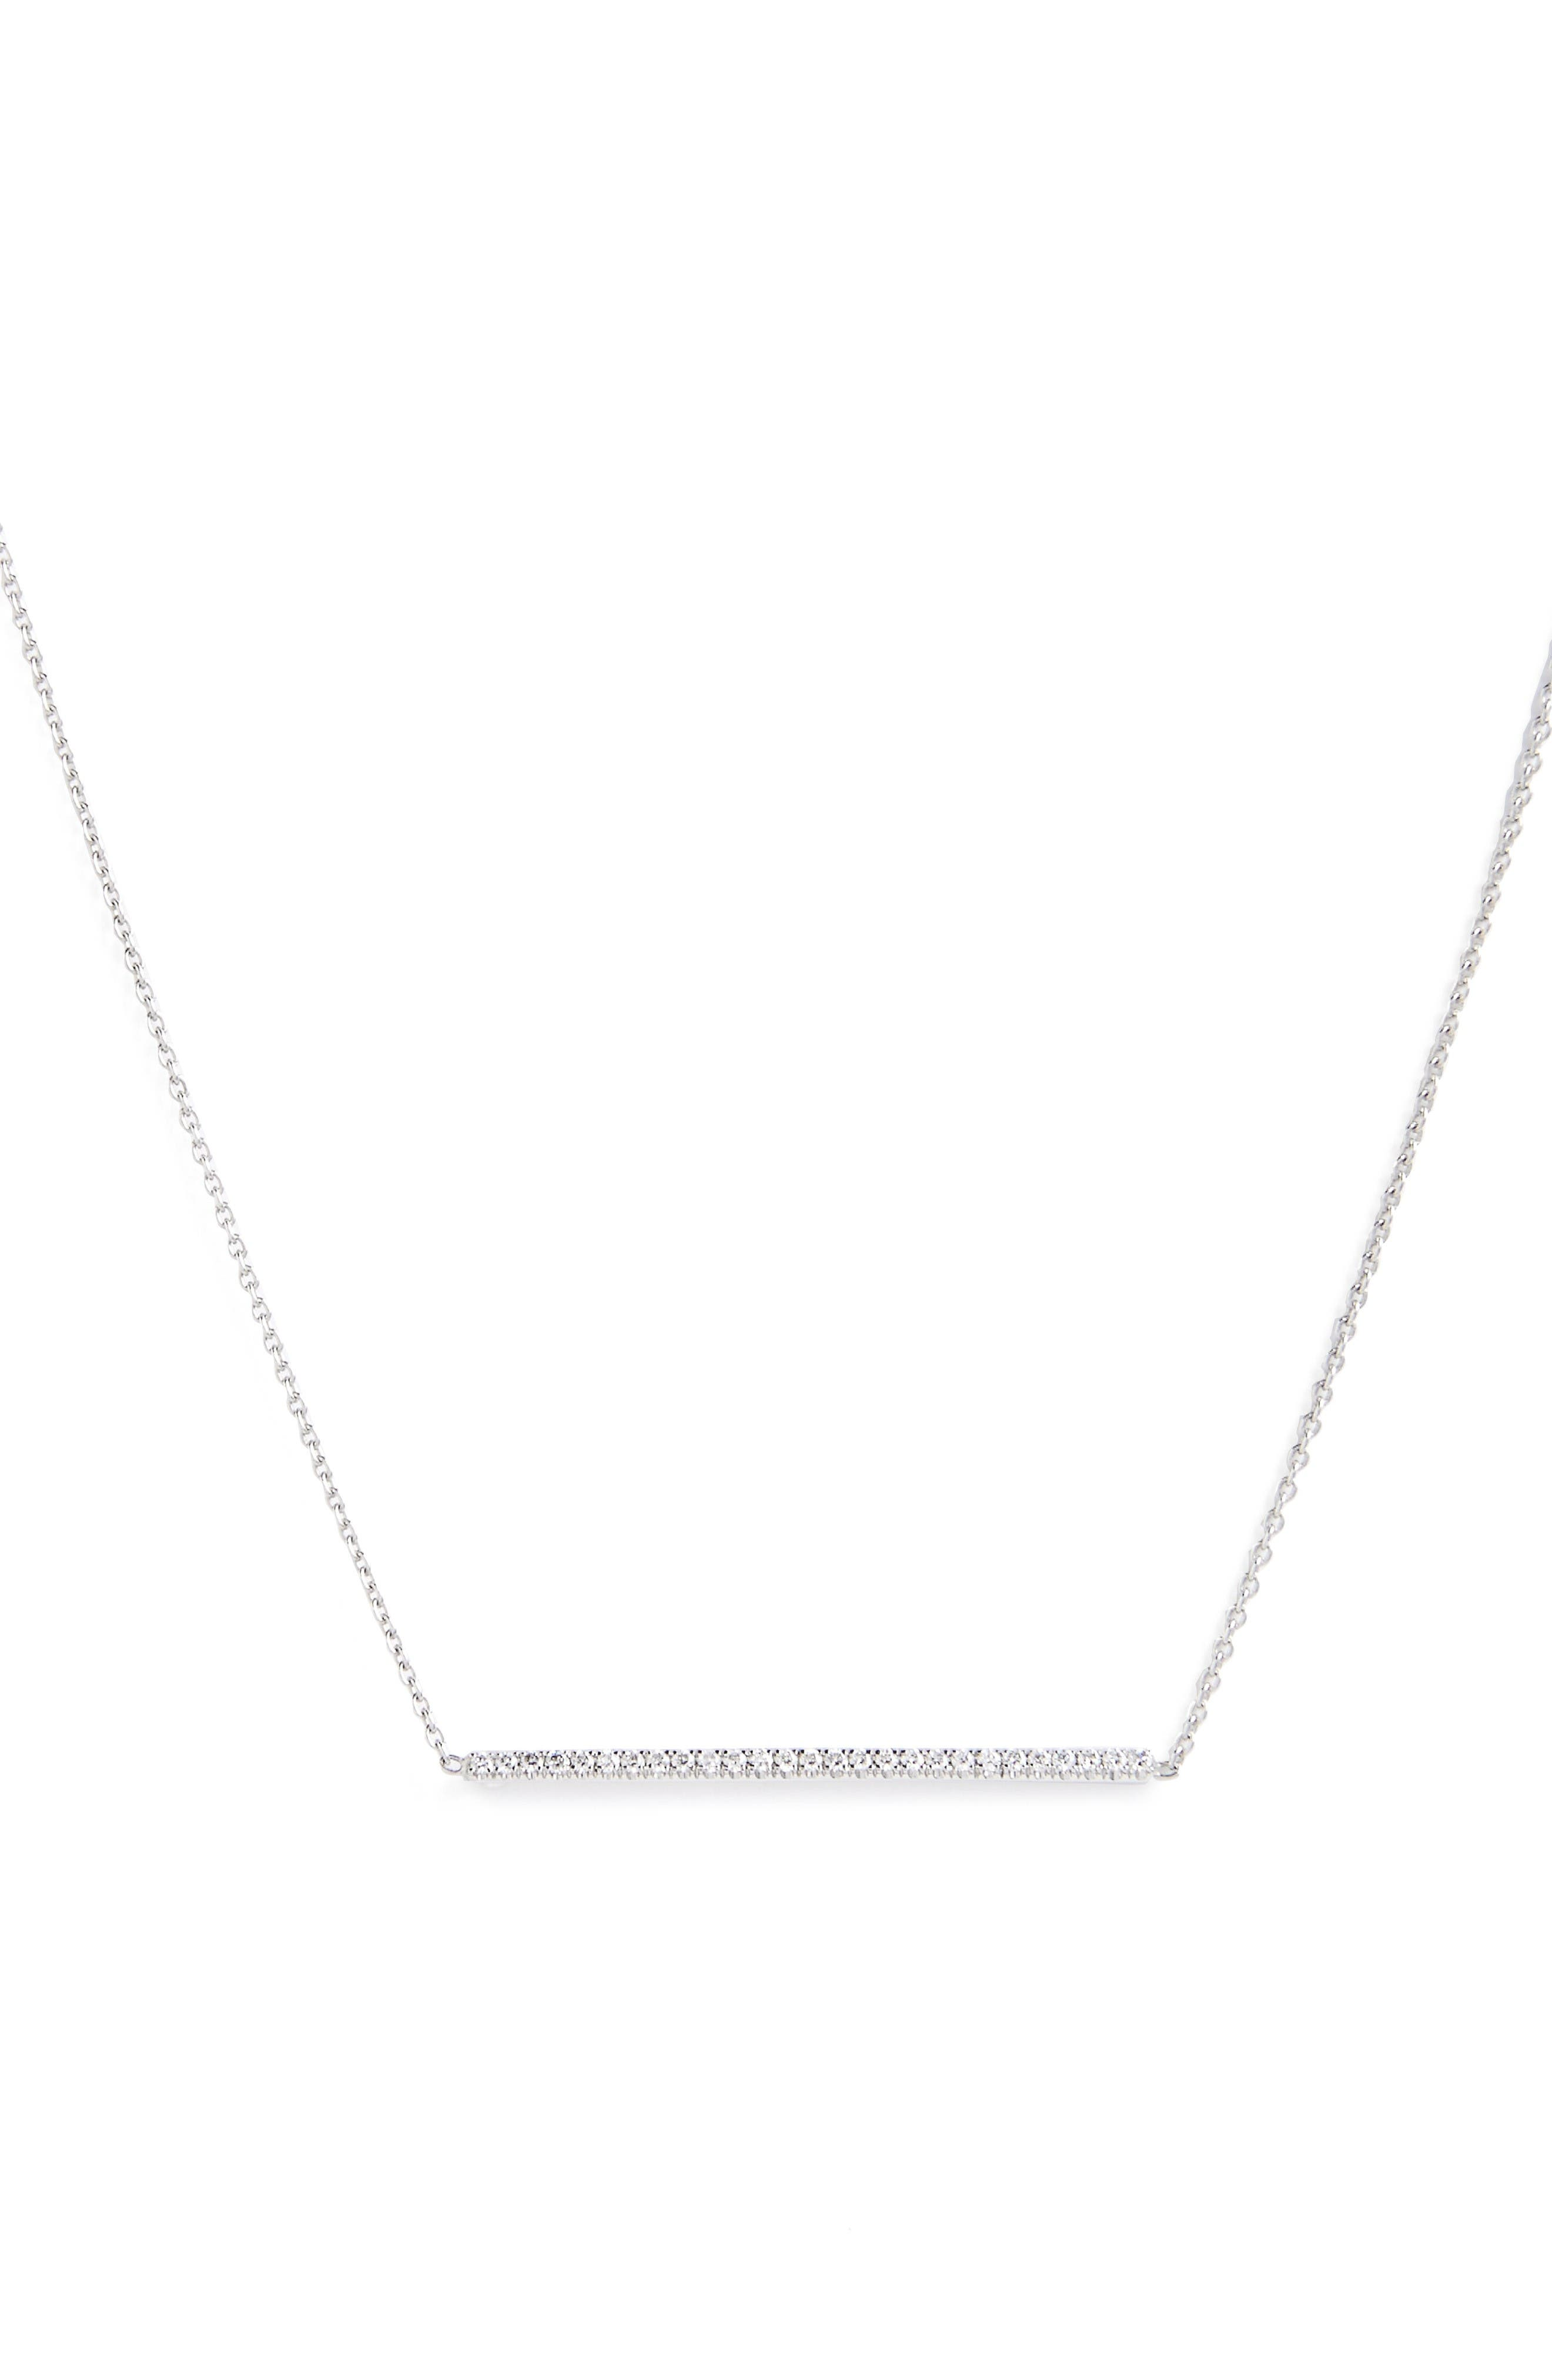 Tiny Treasures Diamond Bar Necklace,                         Main,                         color, White Gold